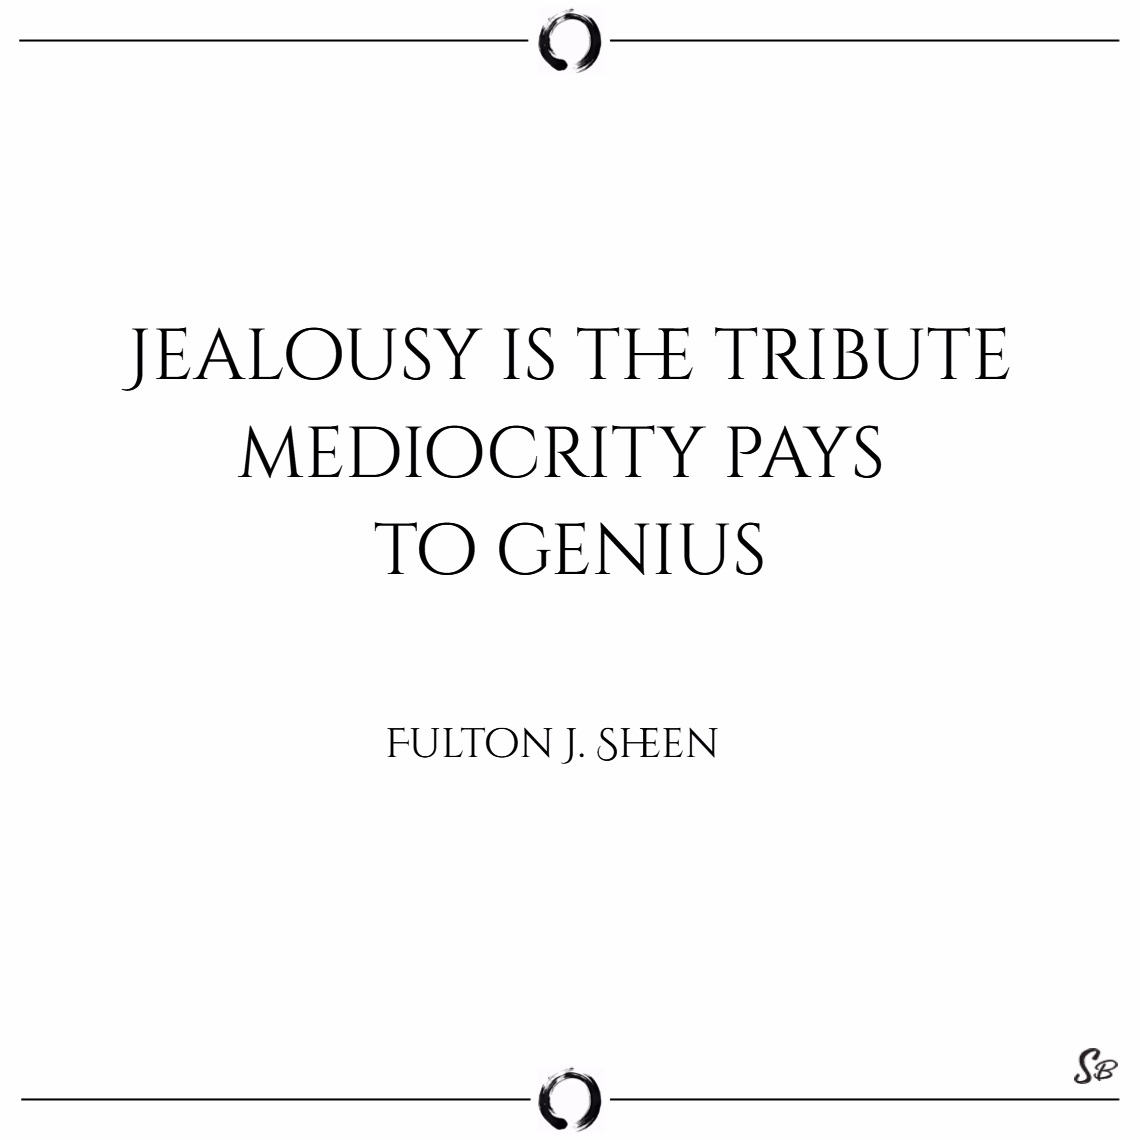 Jealousy is the tribute mediocrity pays to genius. – fulton j. sheen